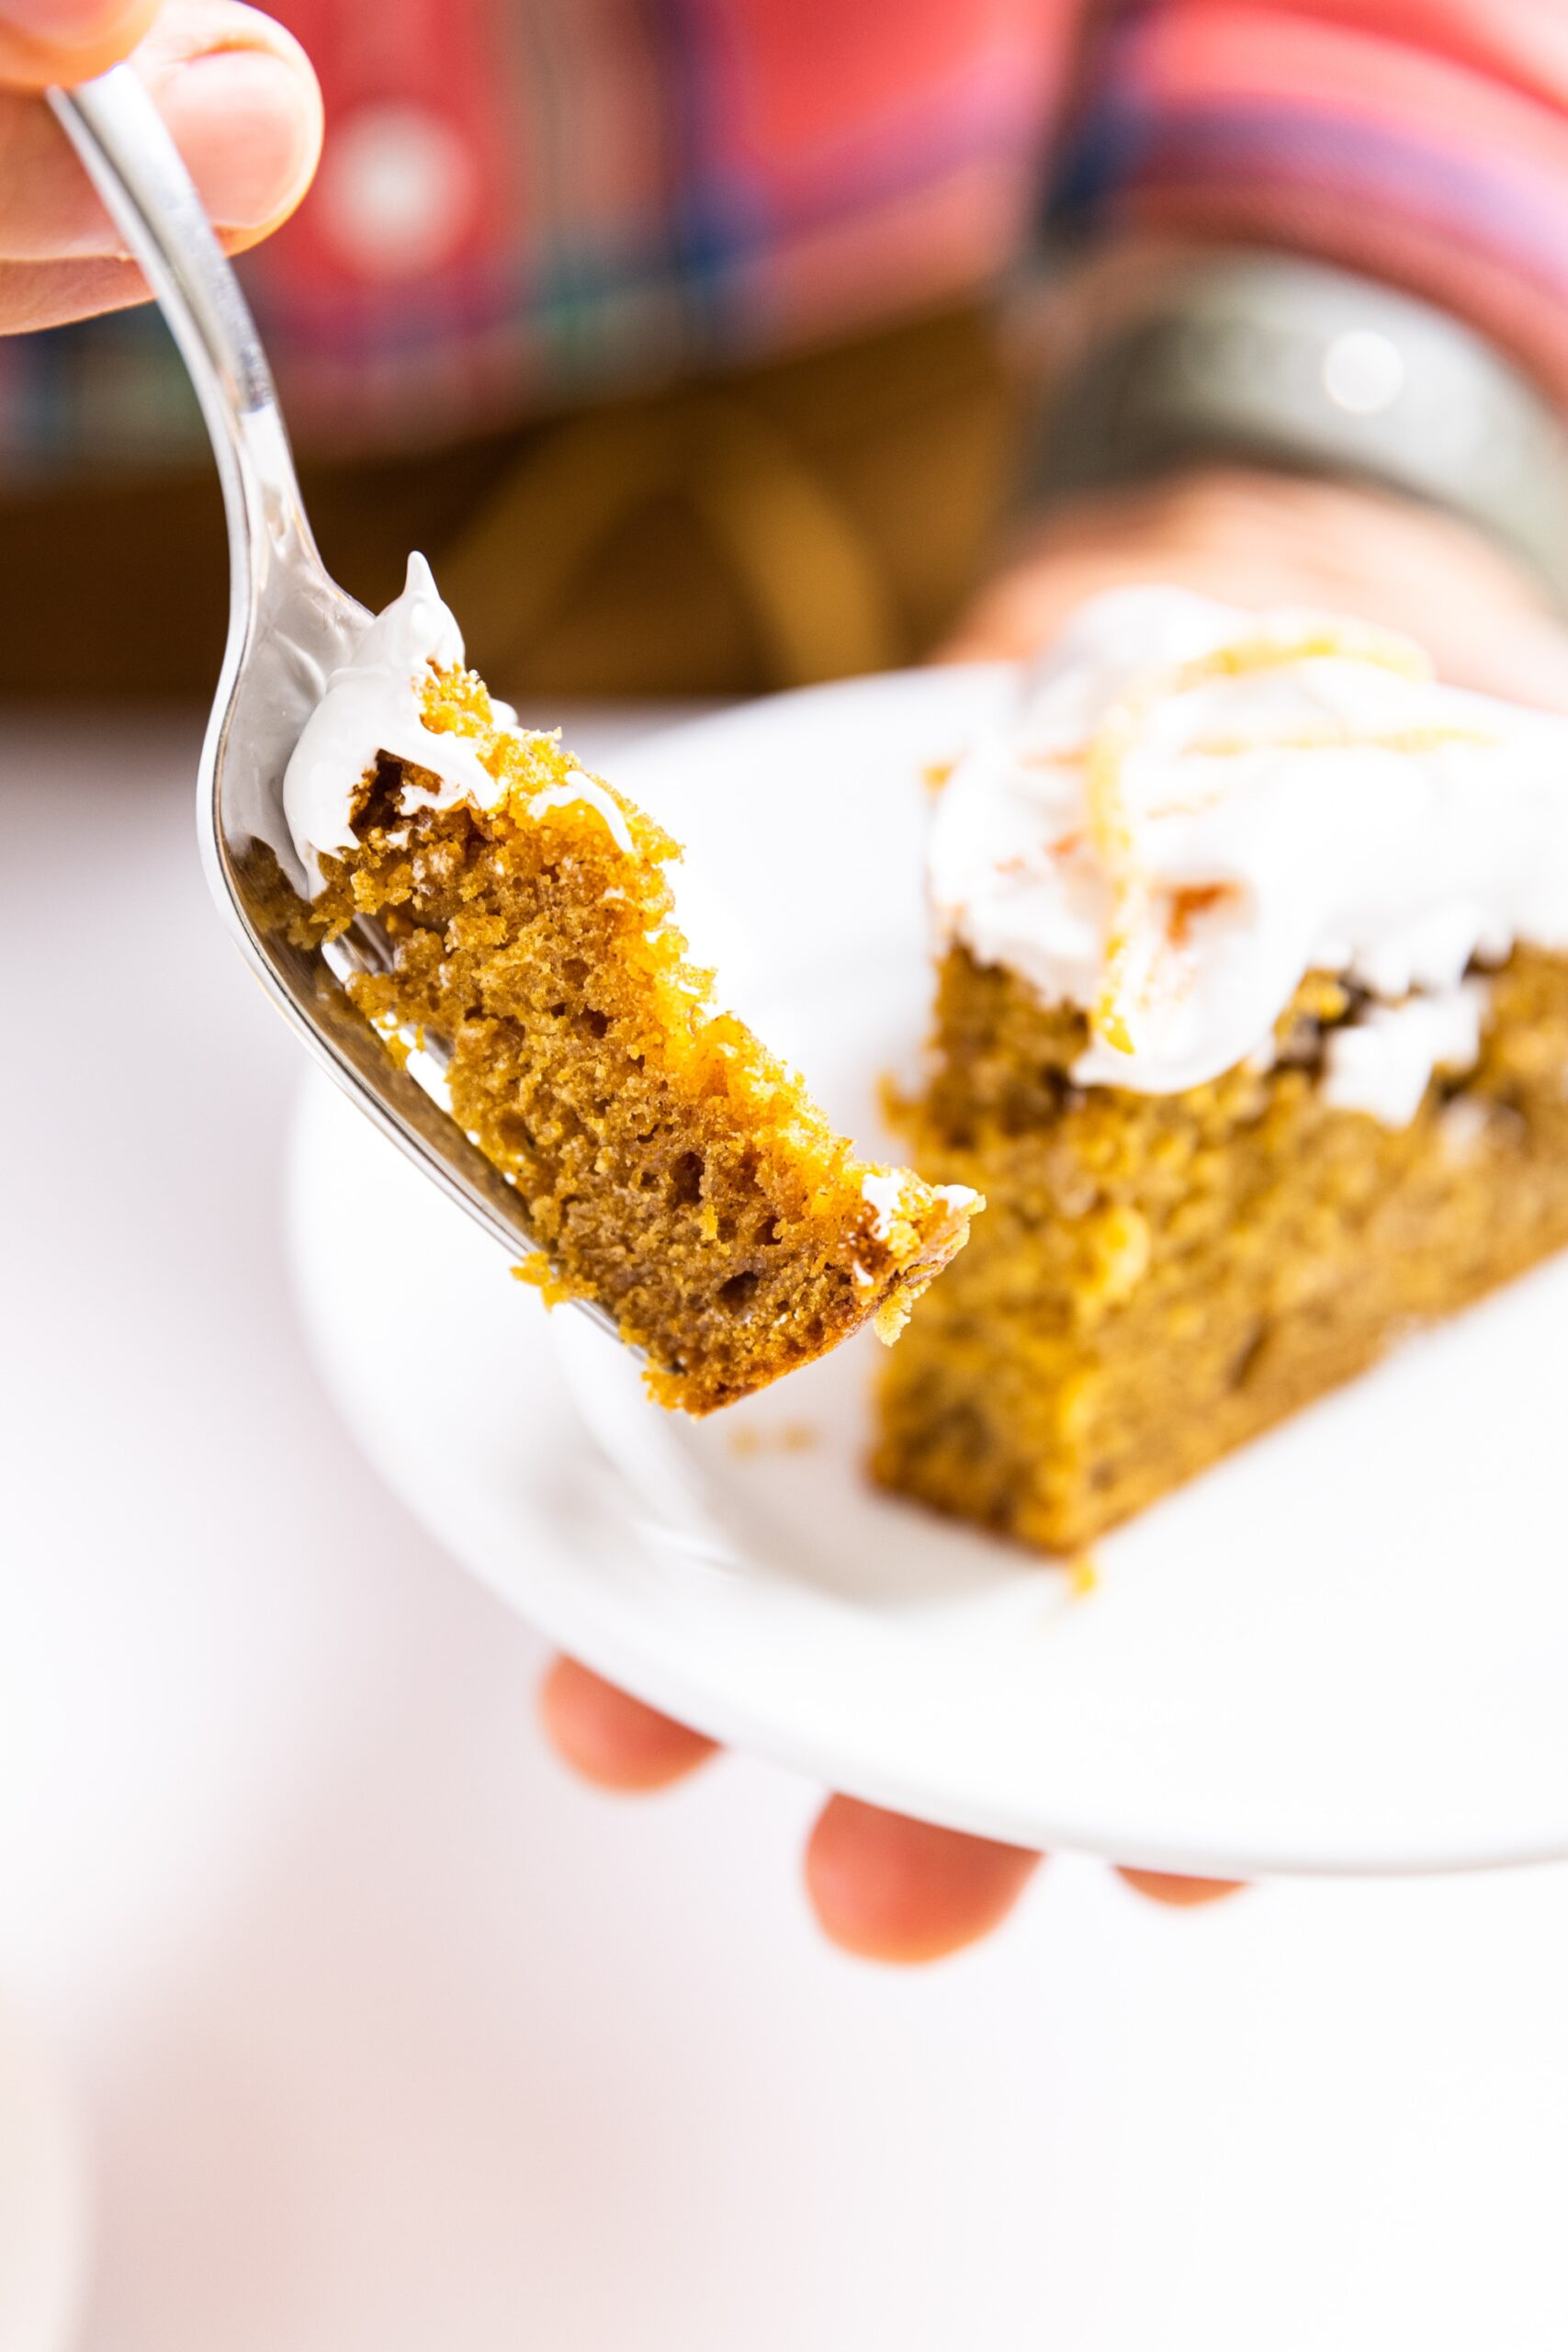 Hand holding fork bite of pumpkin applesauce cake with hand holding other part of cake